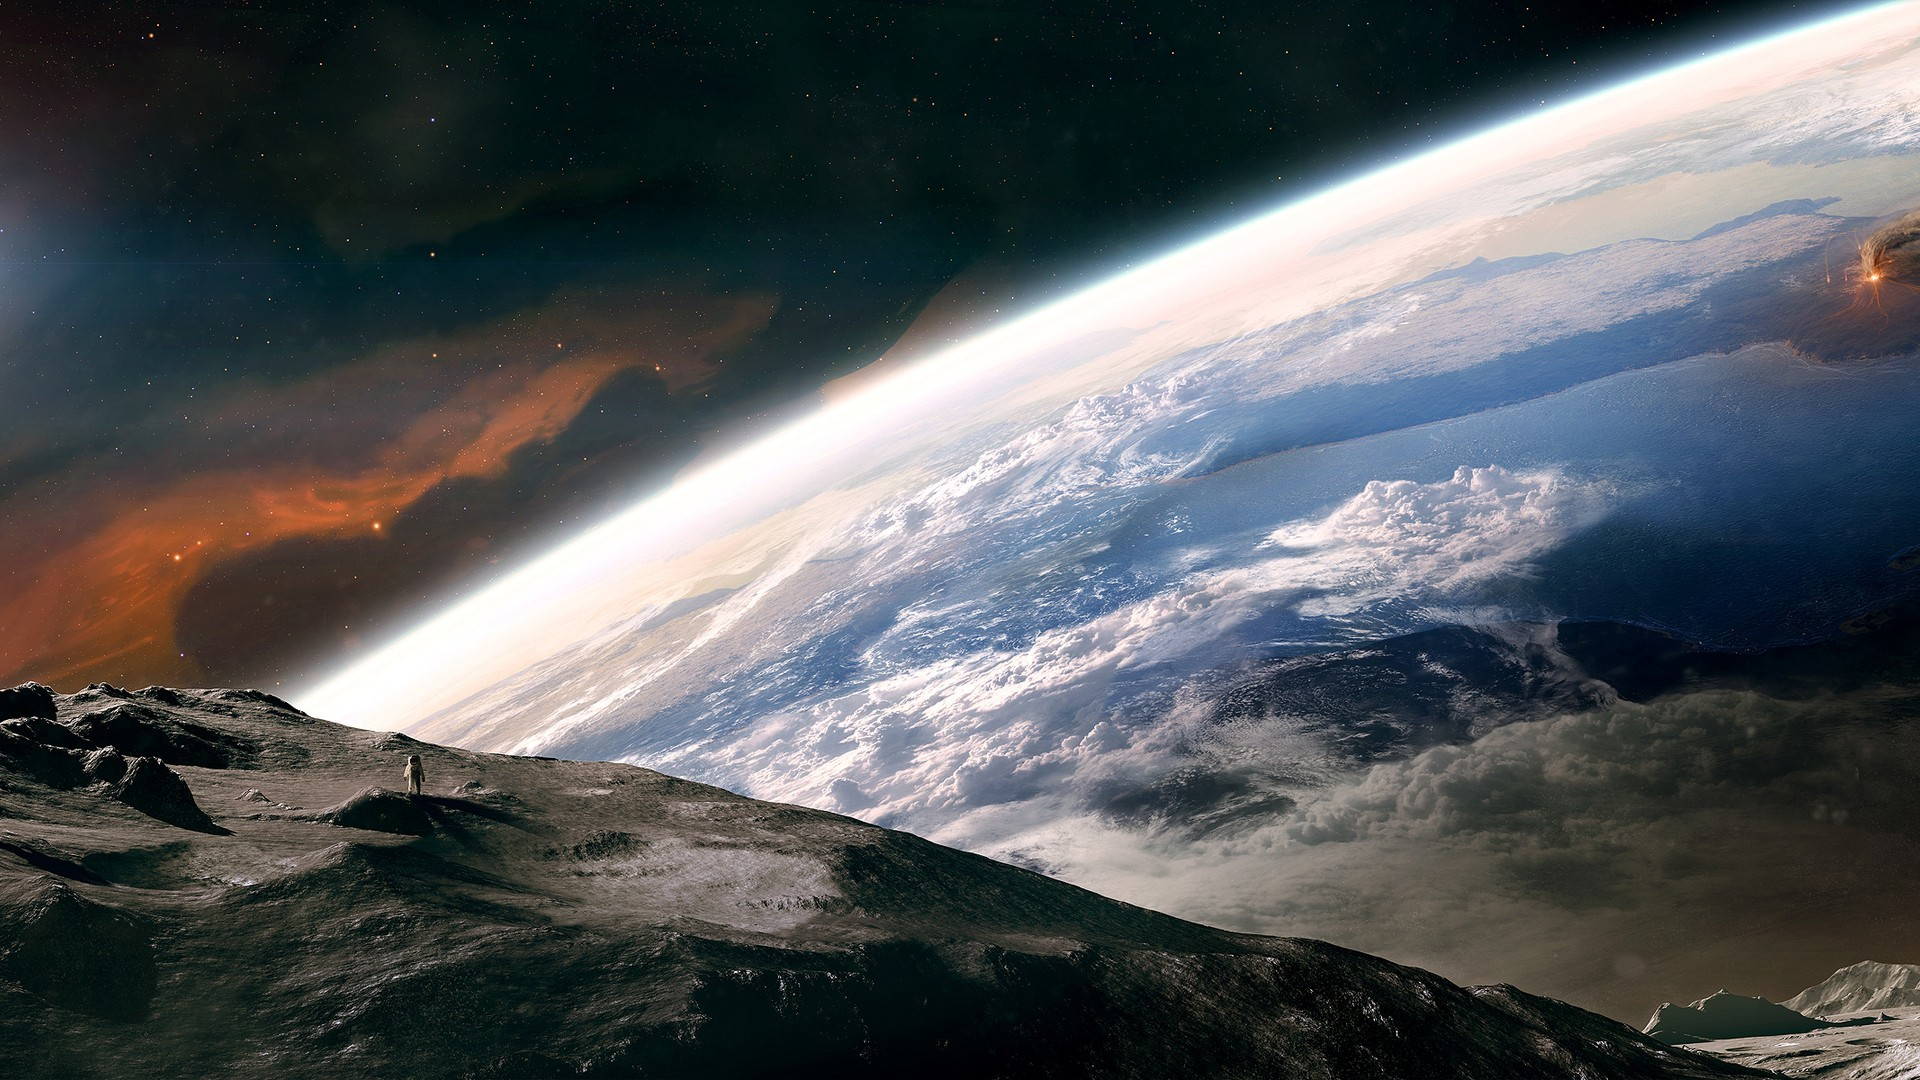 General 1920x1080 space Earth planet Moon universe photo manipulation stars clouds astronaut artwork nebula continents atmosphere space art digital art